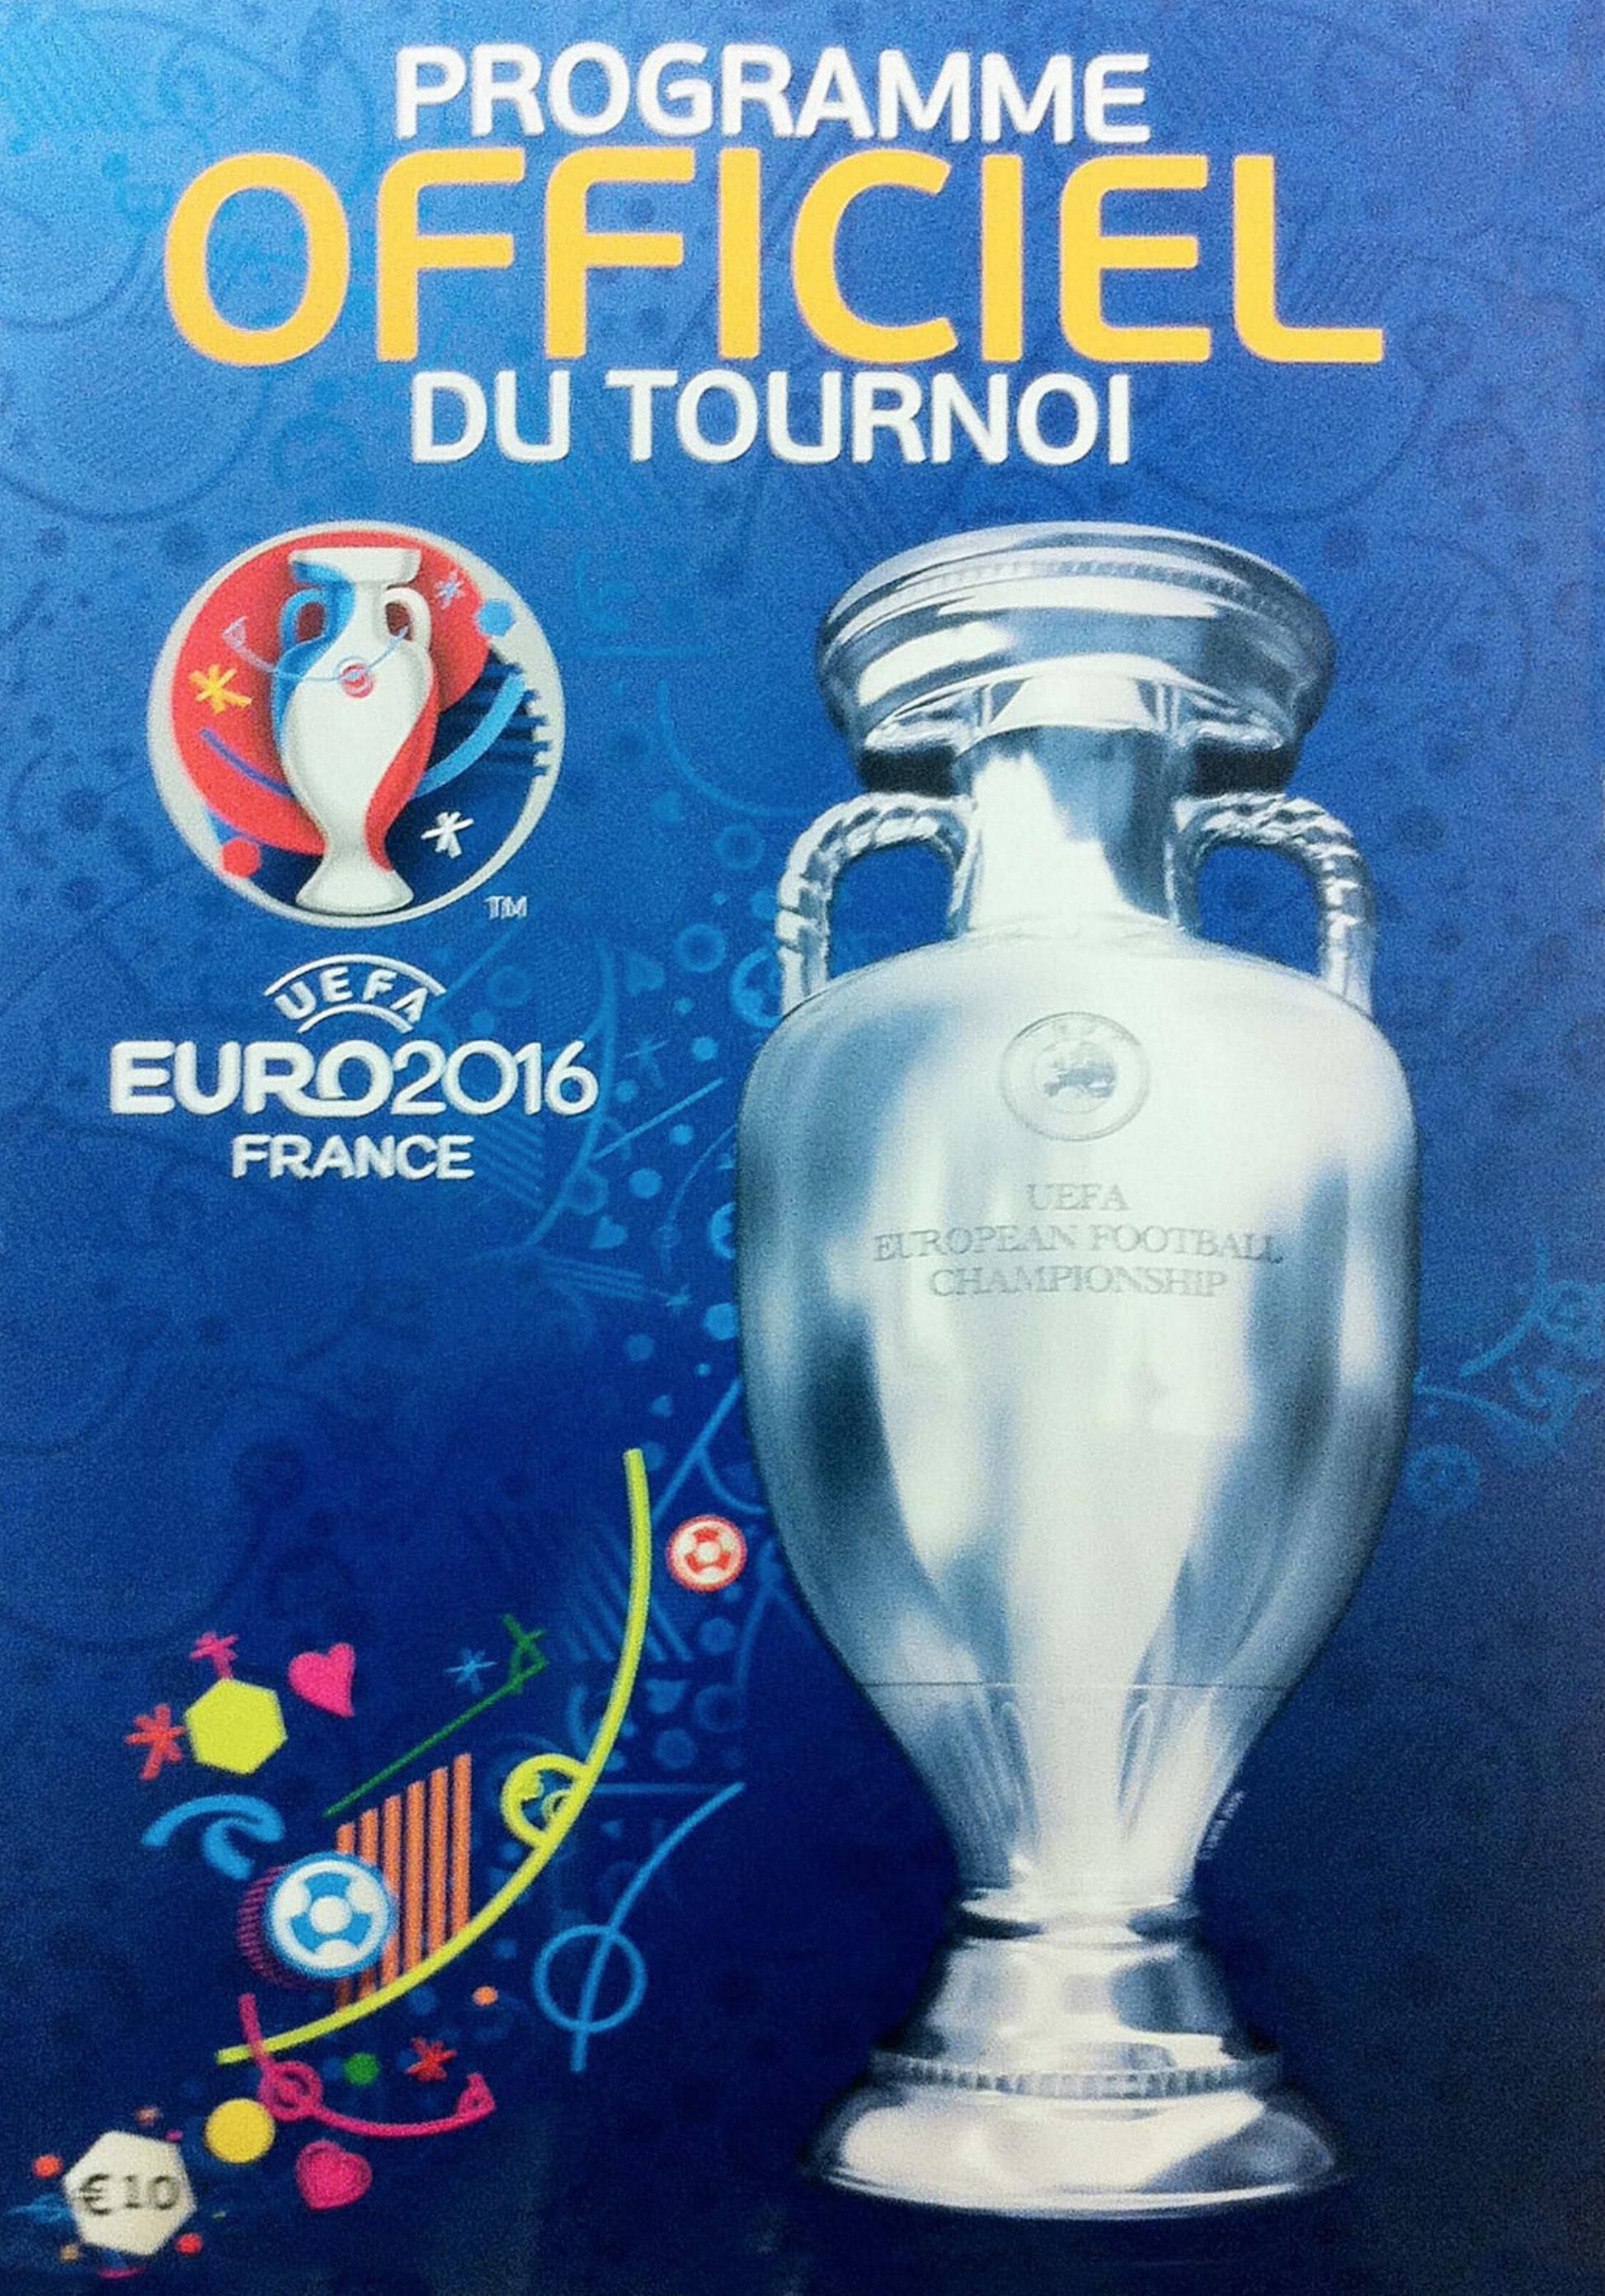 EURO 2016 OFFICIAL TOURNAMENT PROGRAMME (FRENCH LANGUAGE)